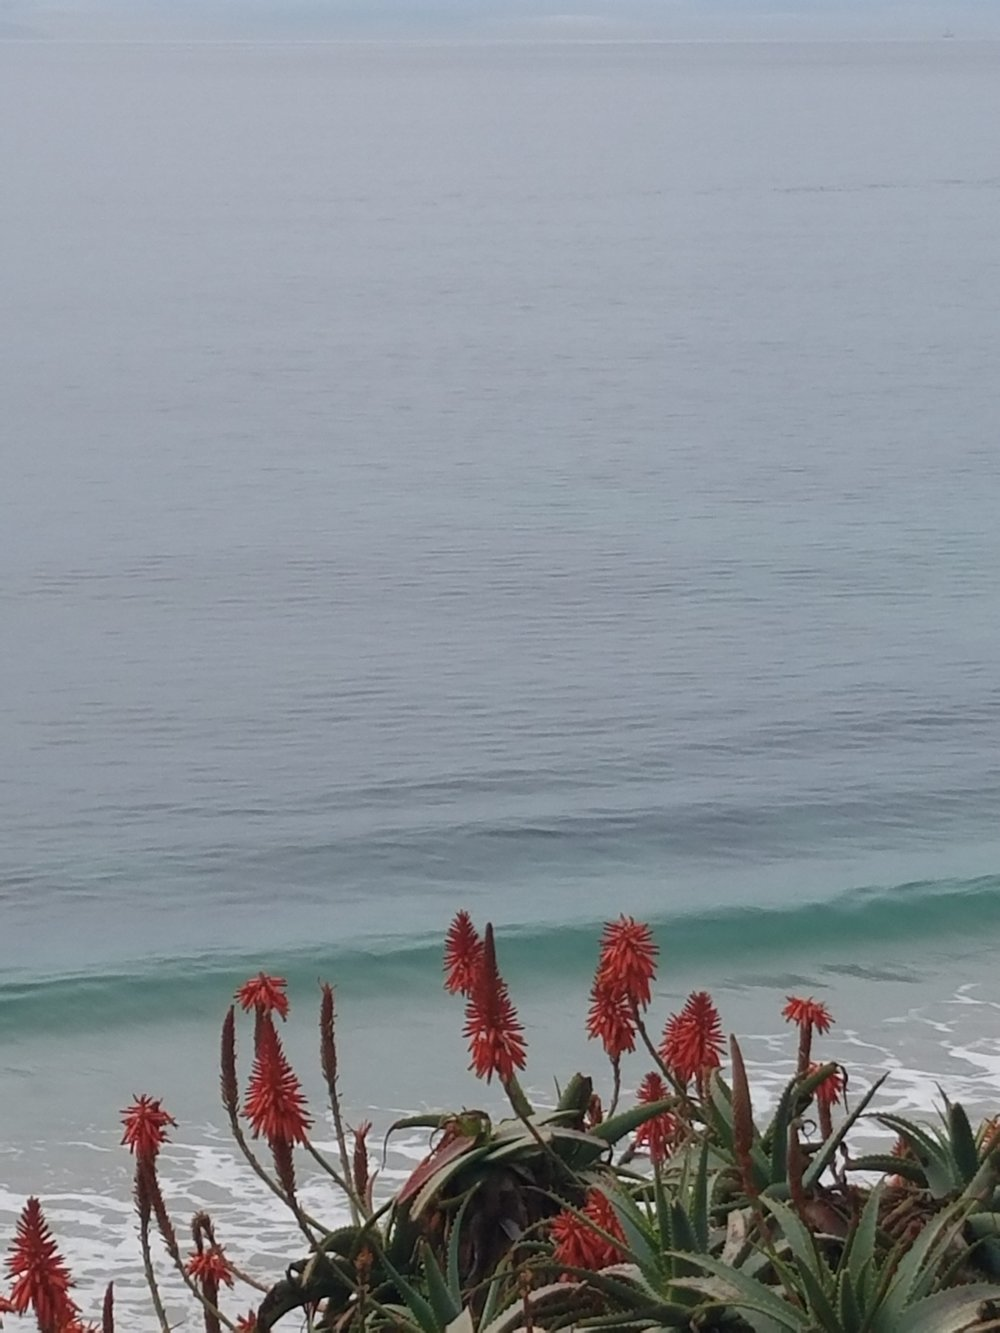 A photograph (taken by the author) of the Pacific Ocean, featuring very small, gentle waves behind spiney red and green plant life.